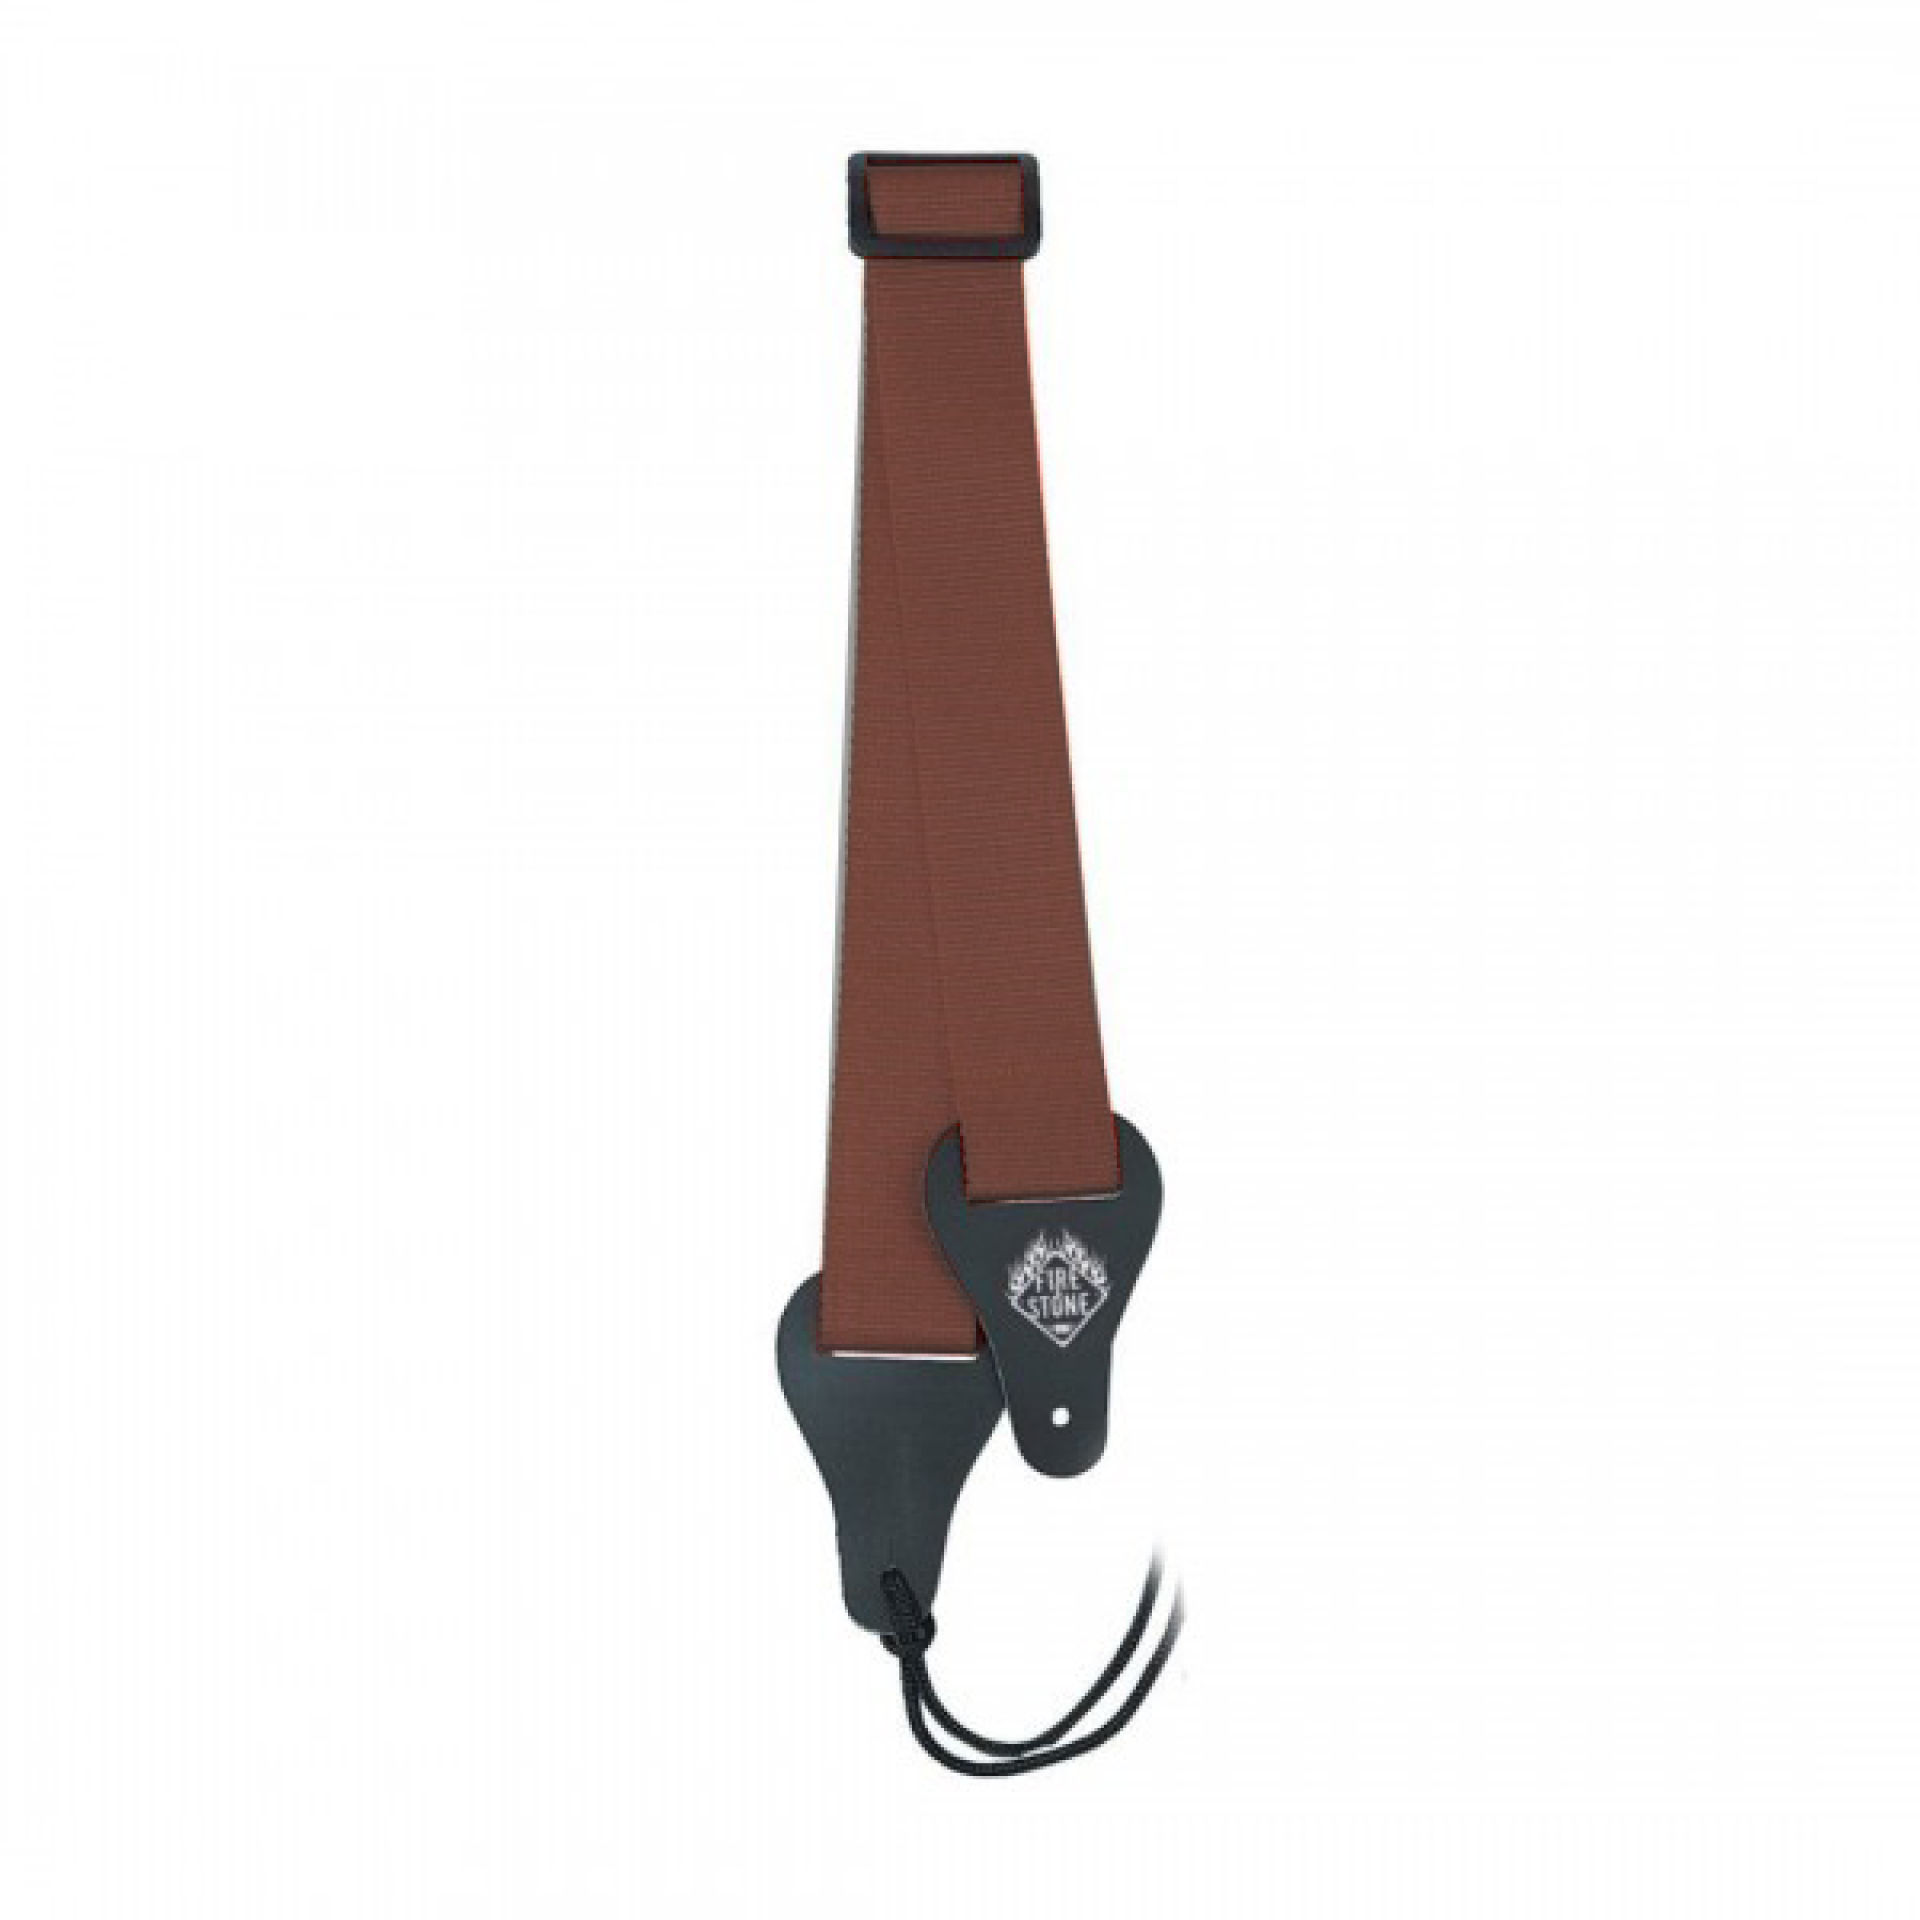 GEWA GUITAR SHOULDER STRAP - Brown